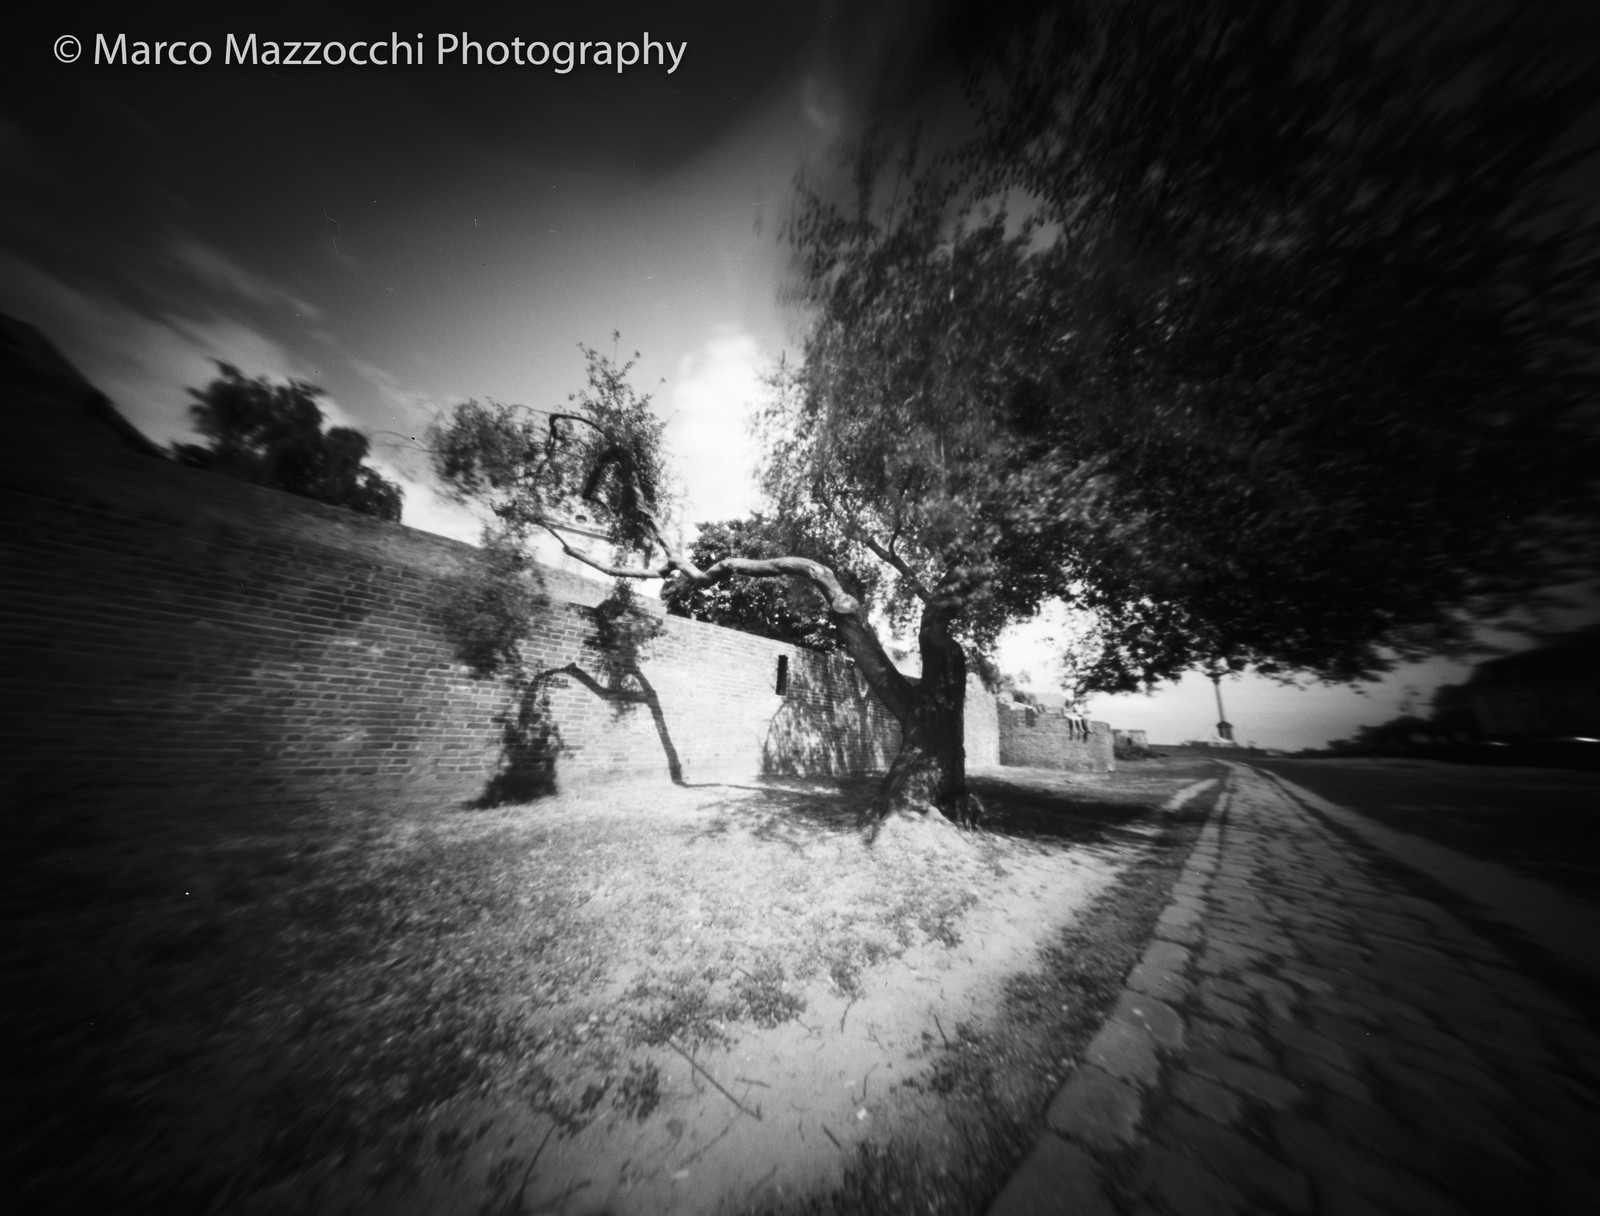 Marco Mazzocchi Photography - Professional photo services Scotland